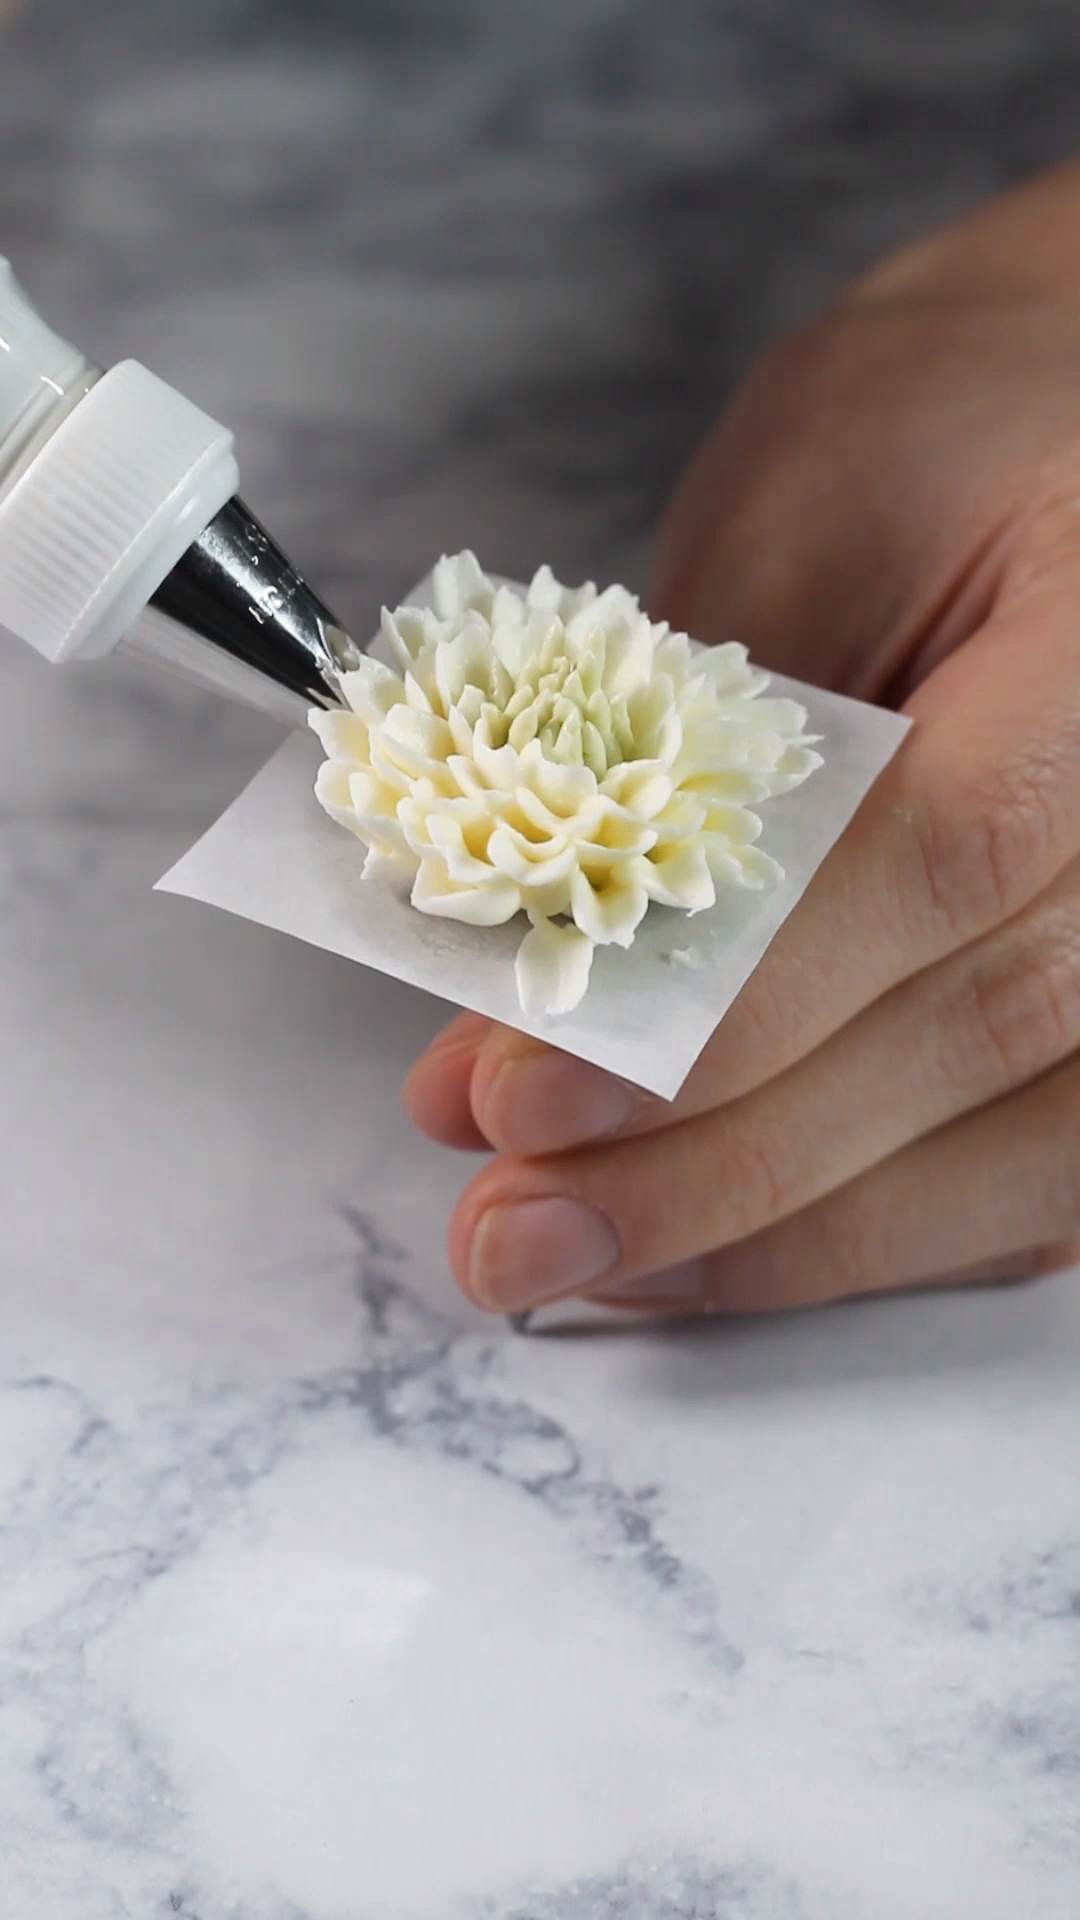 How to Pipe Buttercream Mums #icingfrosting